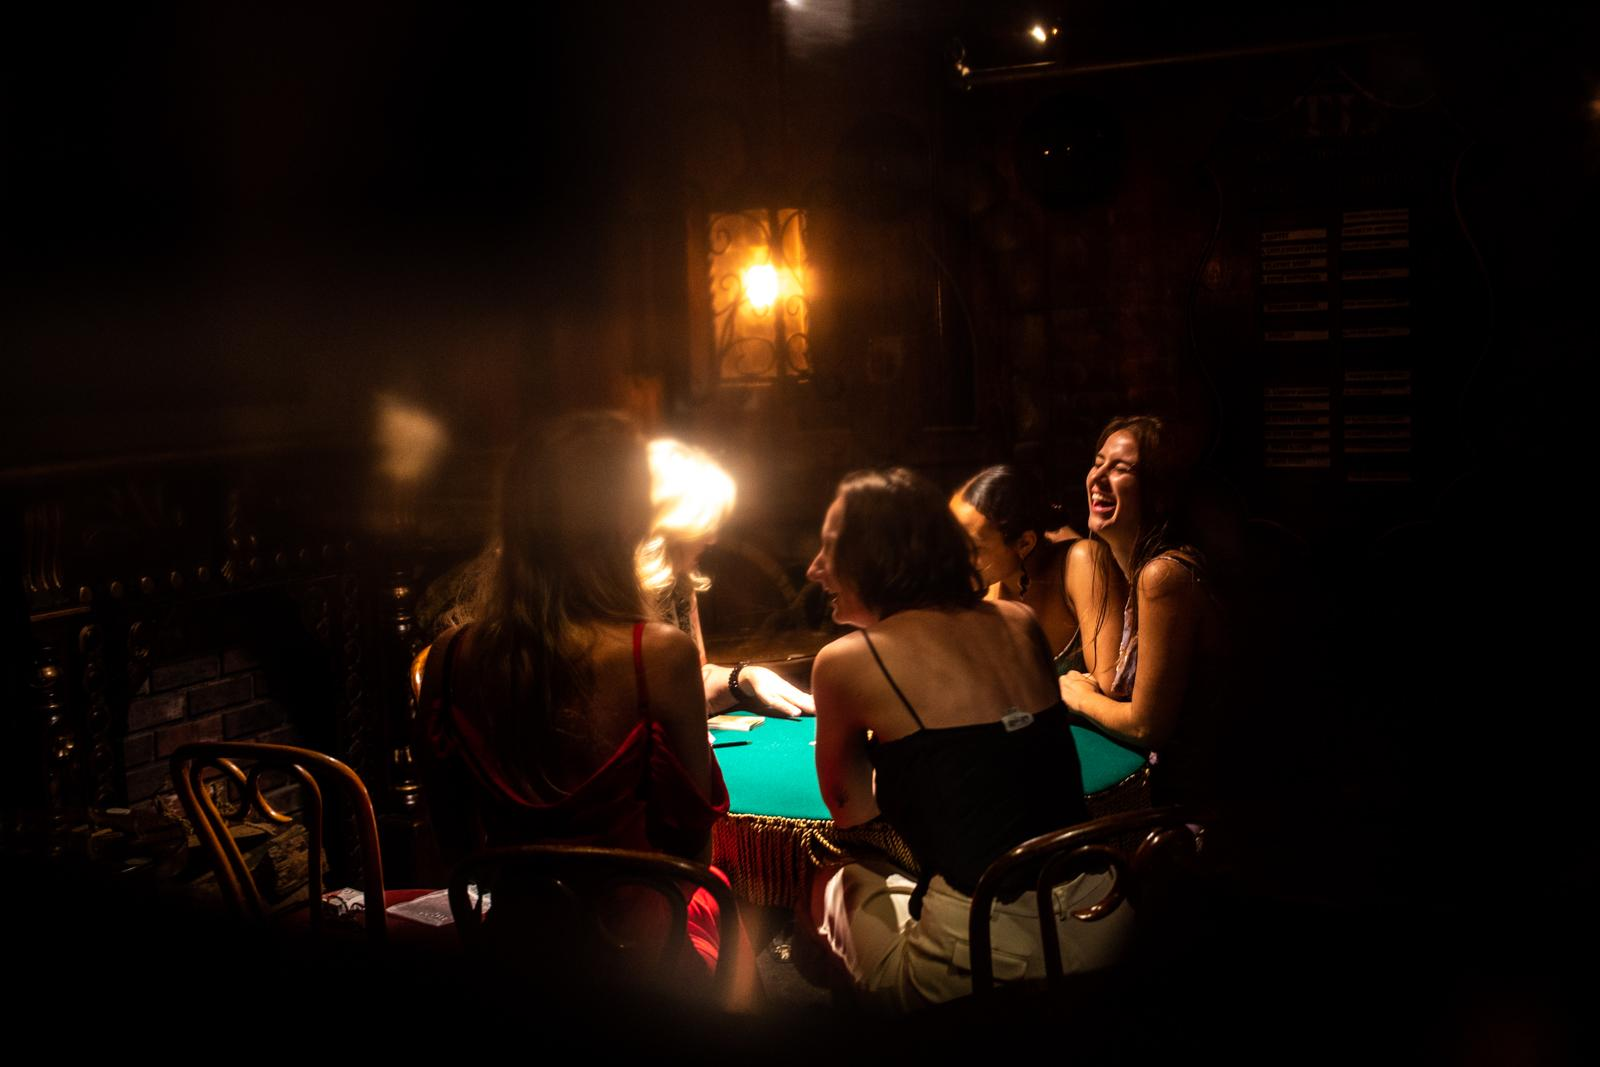 Breeanin Hansteen, Sasha Rieders, Micaela Morton and Magdalena Rieders watch Cydney Kaplan, 45, while she performs a card trick at the Magic Castle in Hollywood.